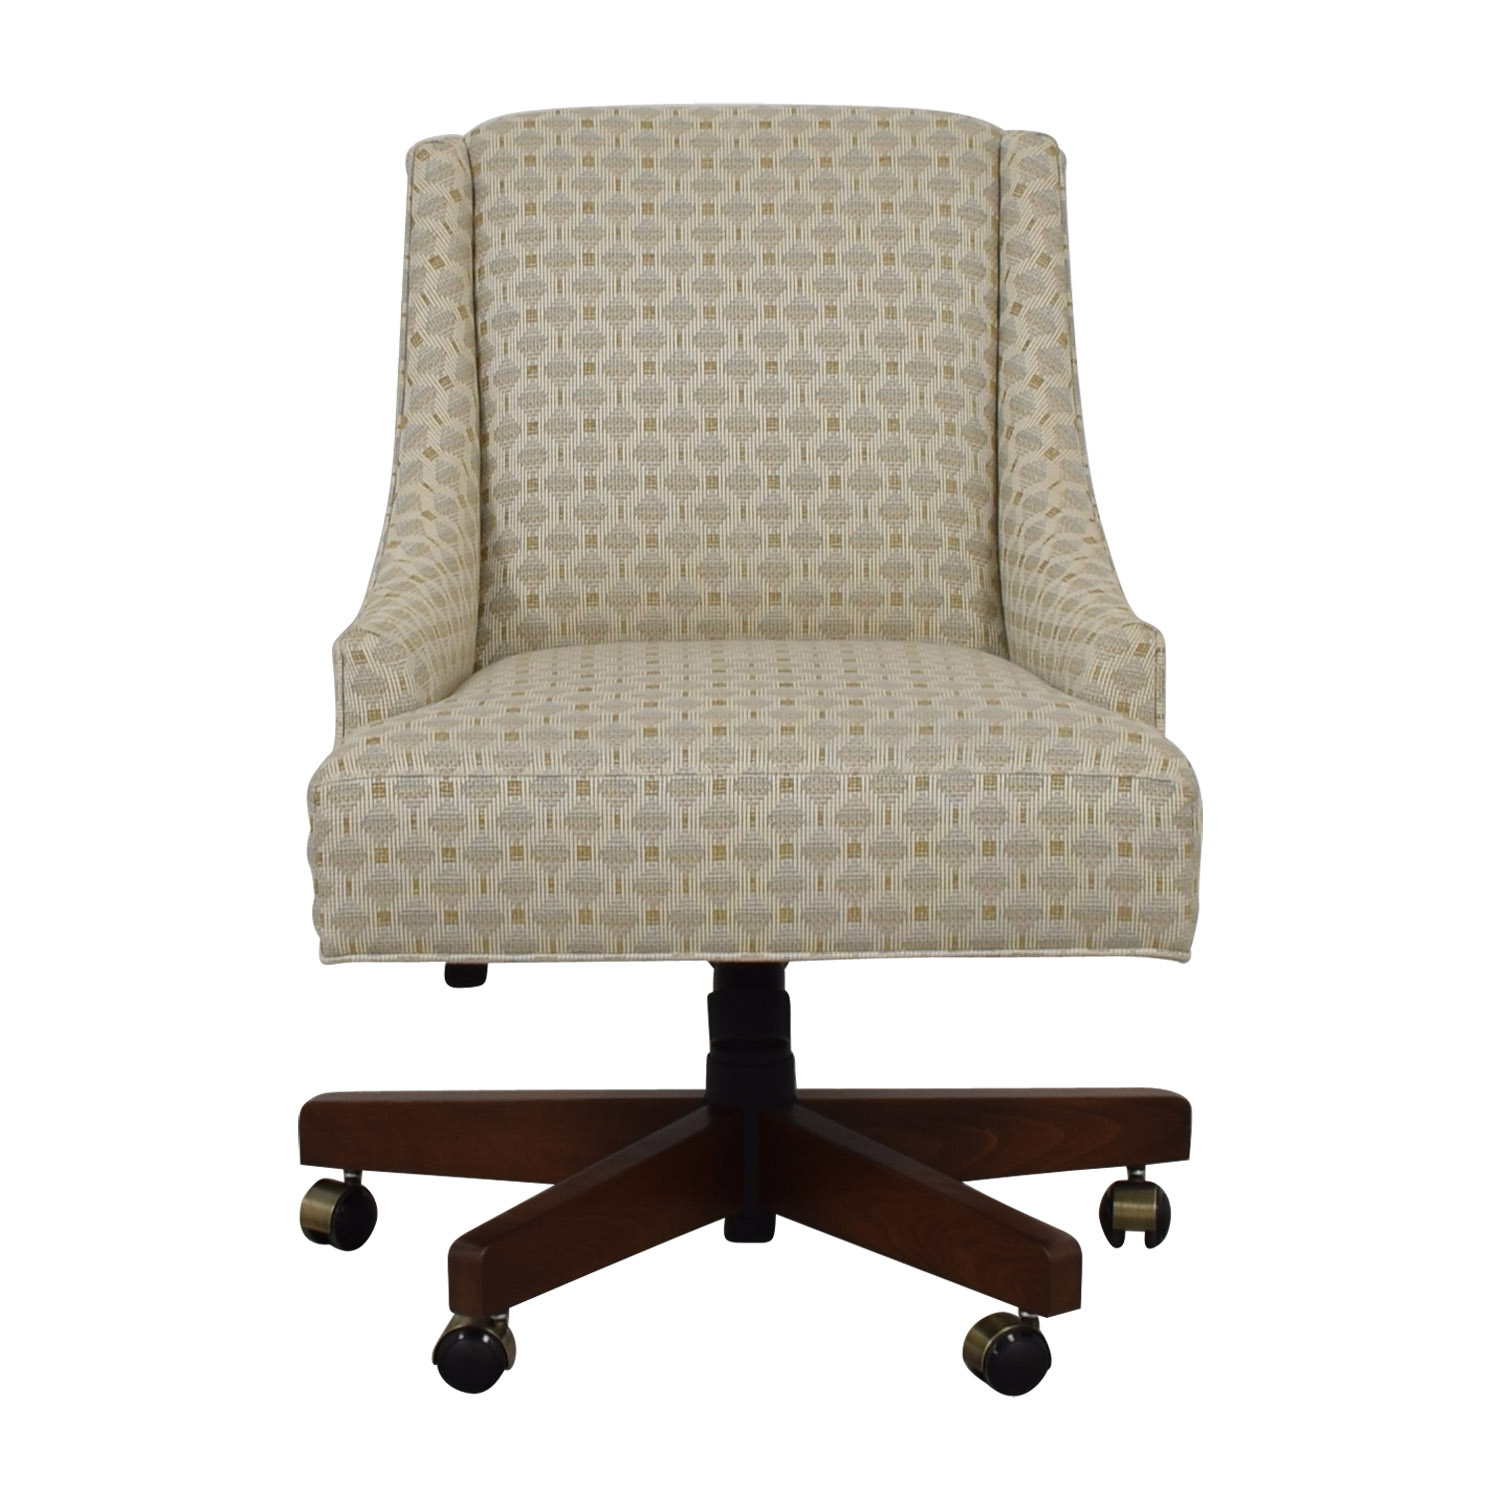 Ethan Allen Ethan Allen Beige Upholstered Office Chair on Castors Home Office Chairs